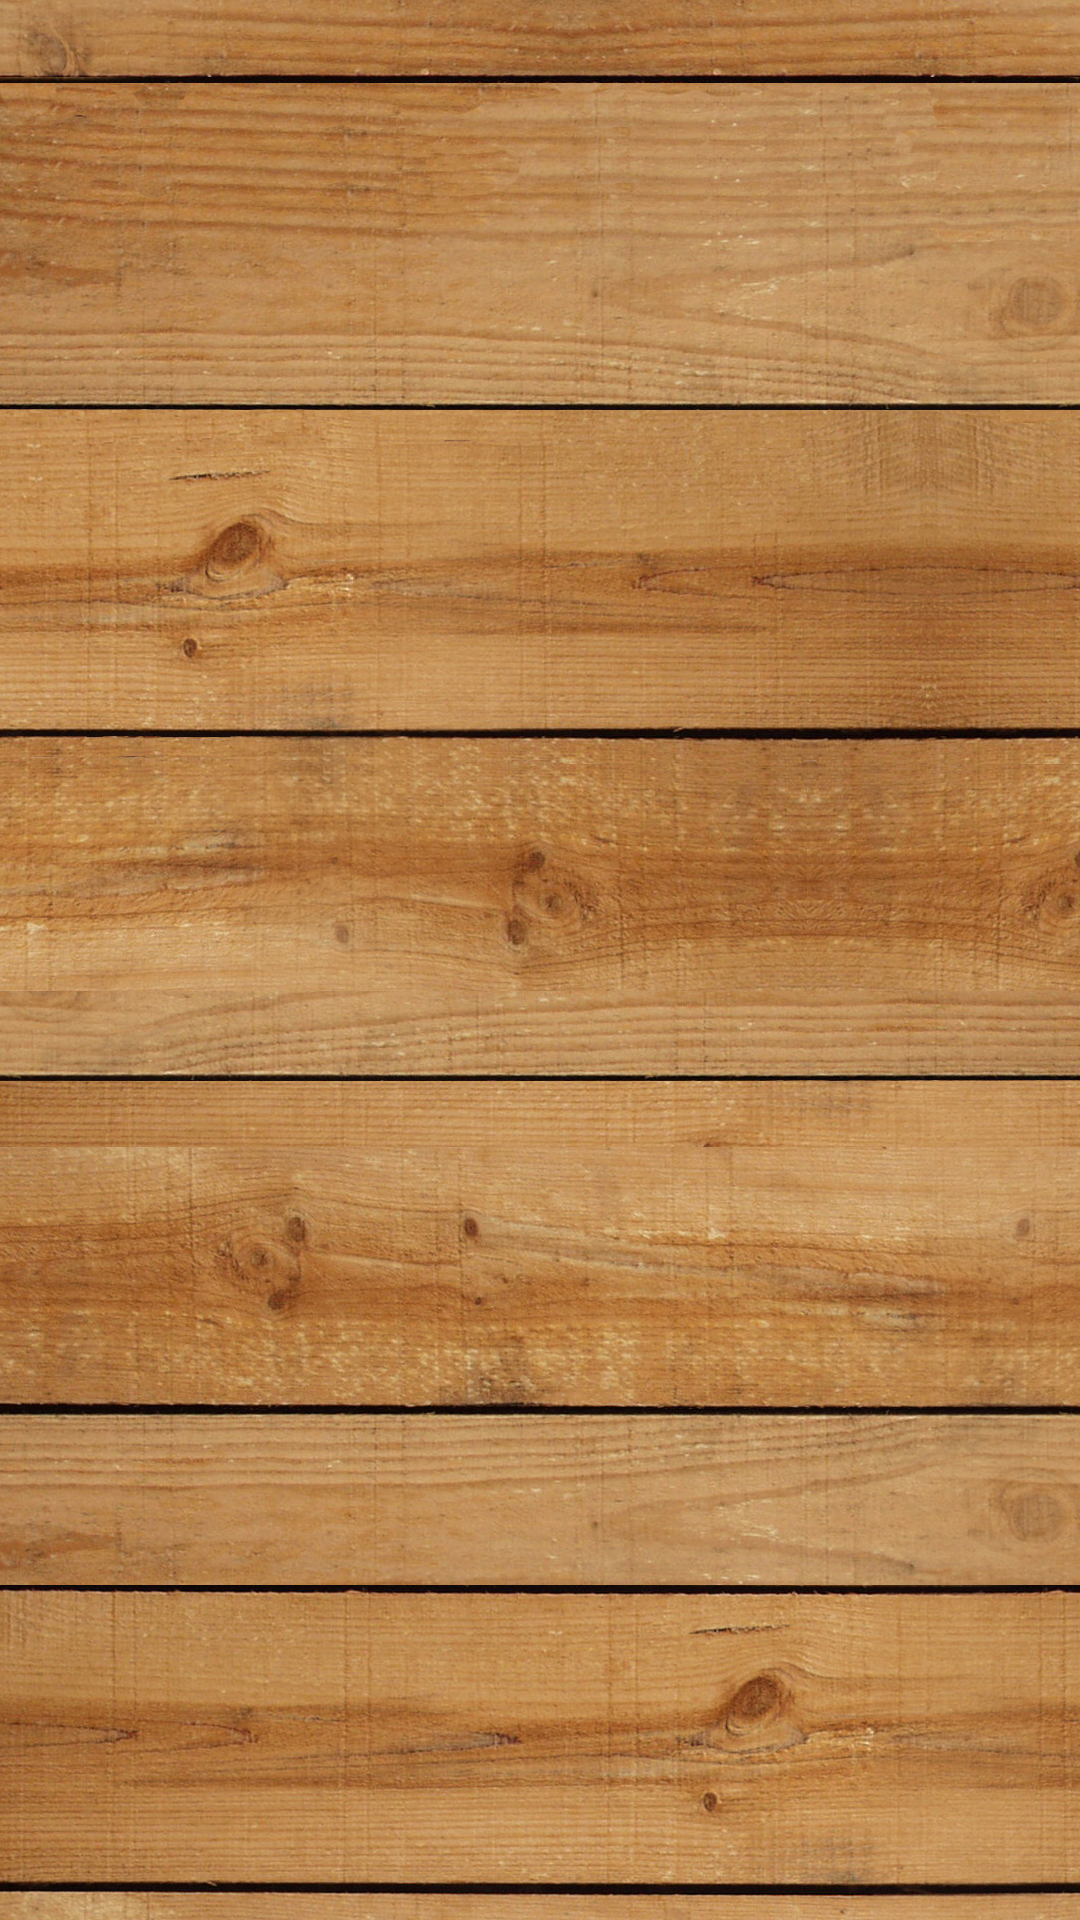 Android-Wood-Panels-background-sssx1920-wallpaper-wp3401765